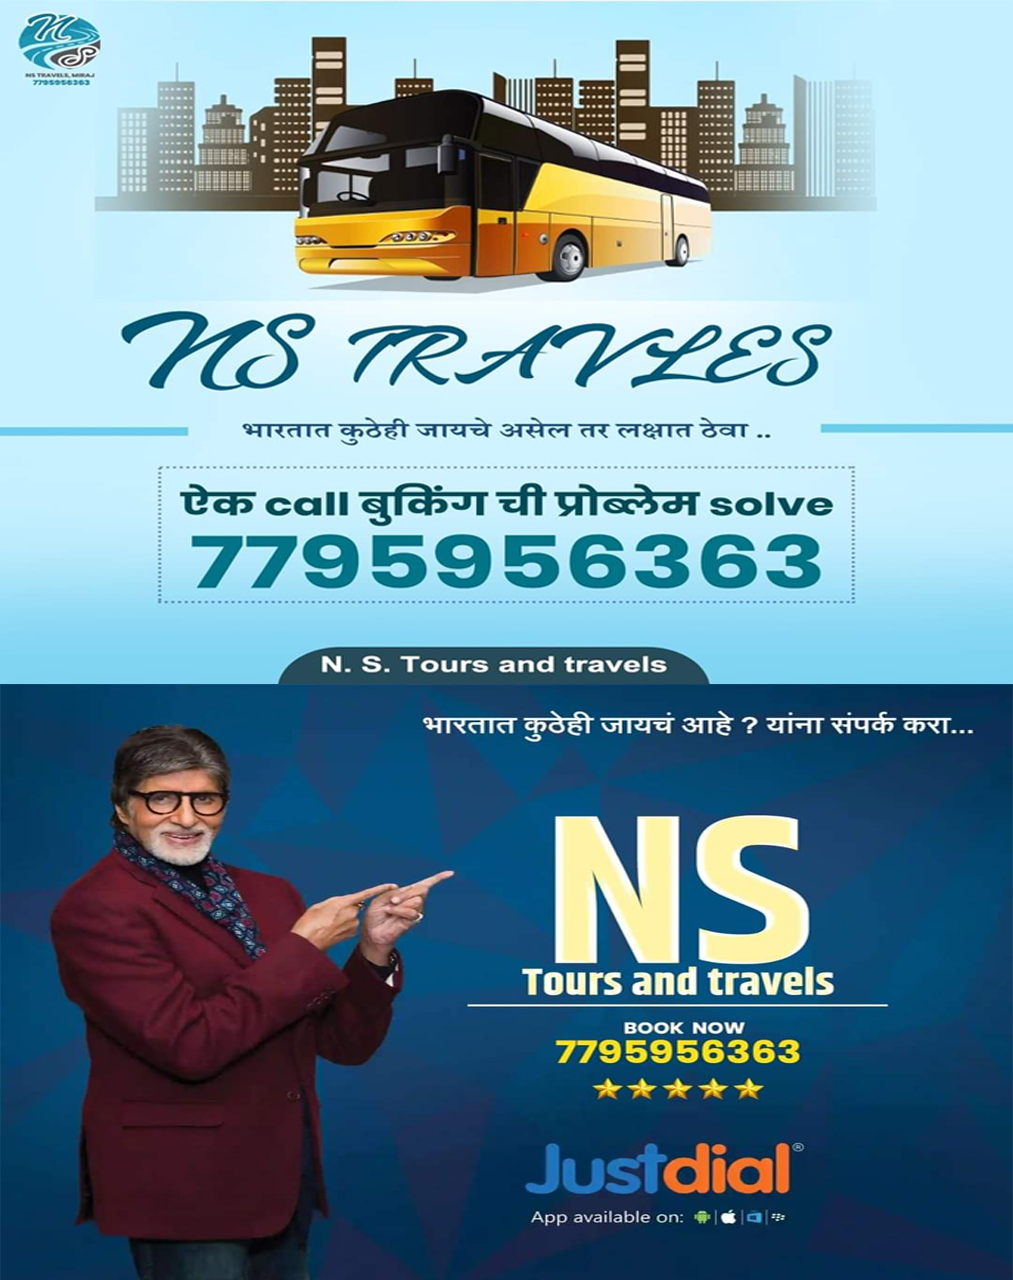 N.S. TOURS AND TRAVELS